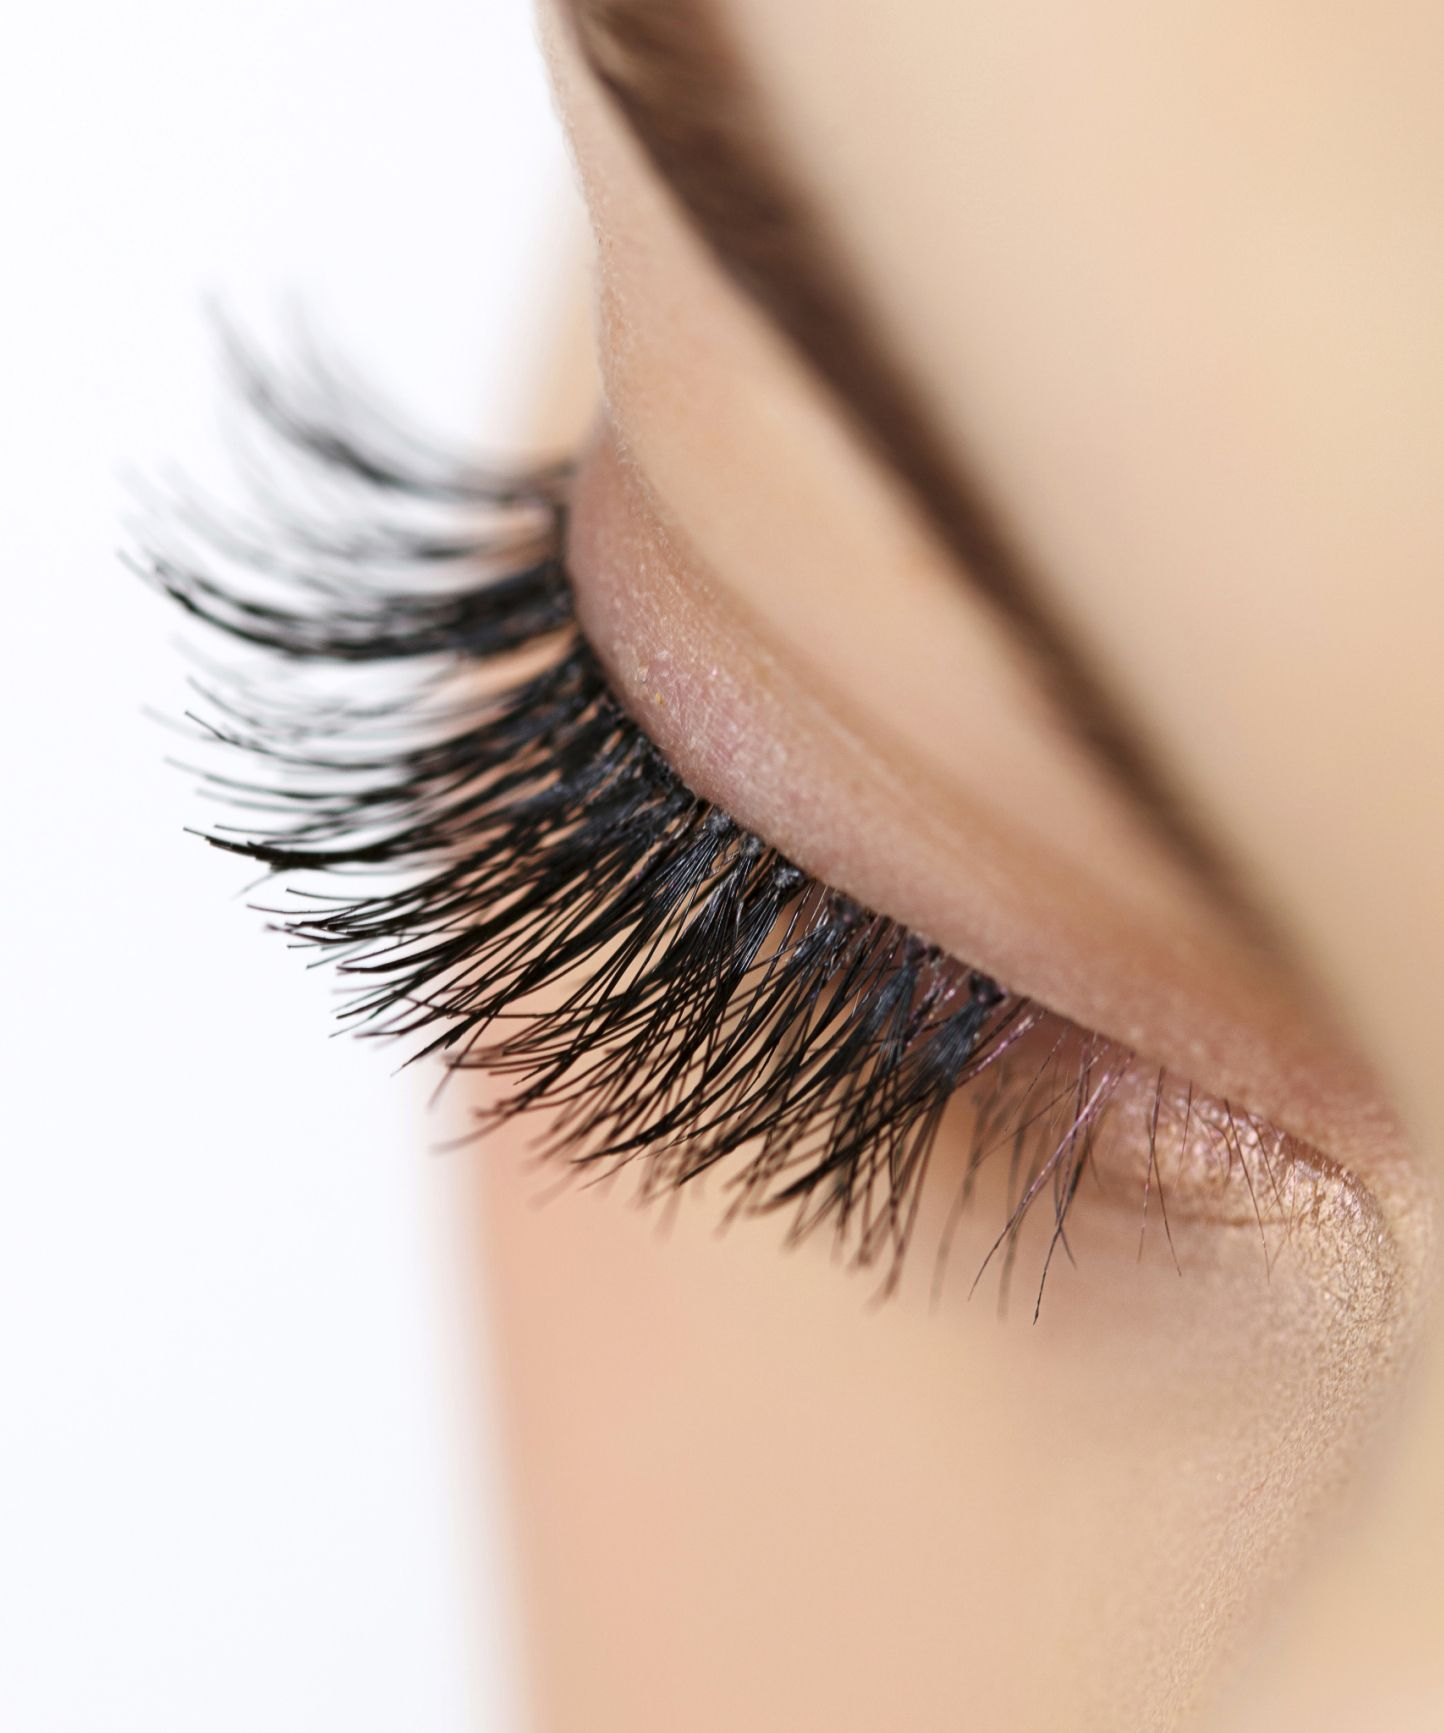 can vaseline actually make your eyelashes grow longer? | beauty